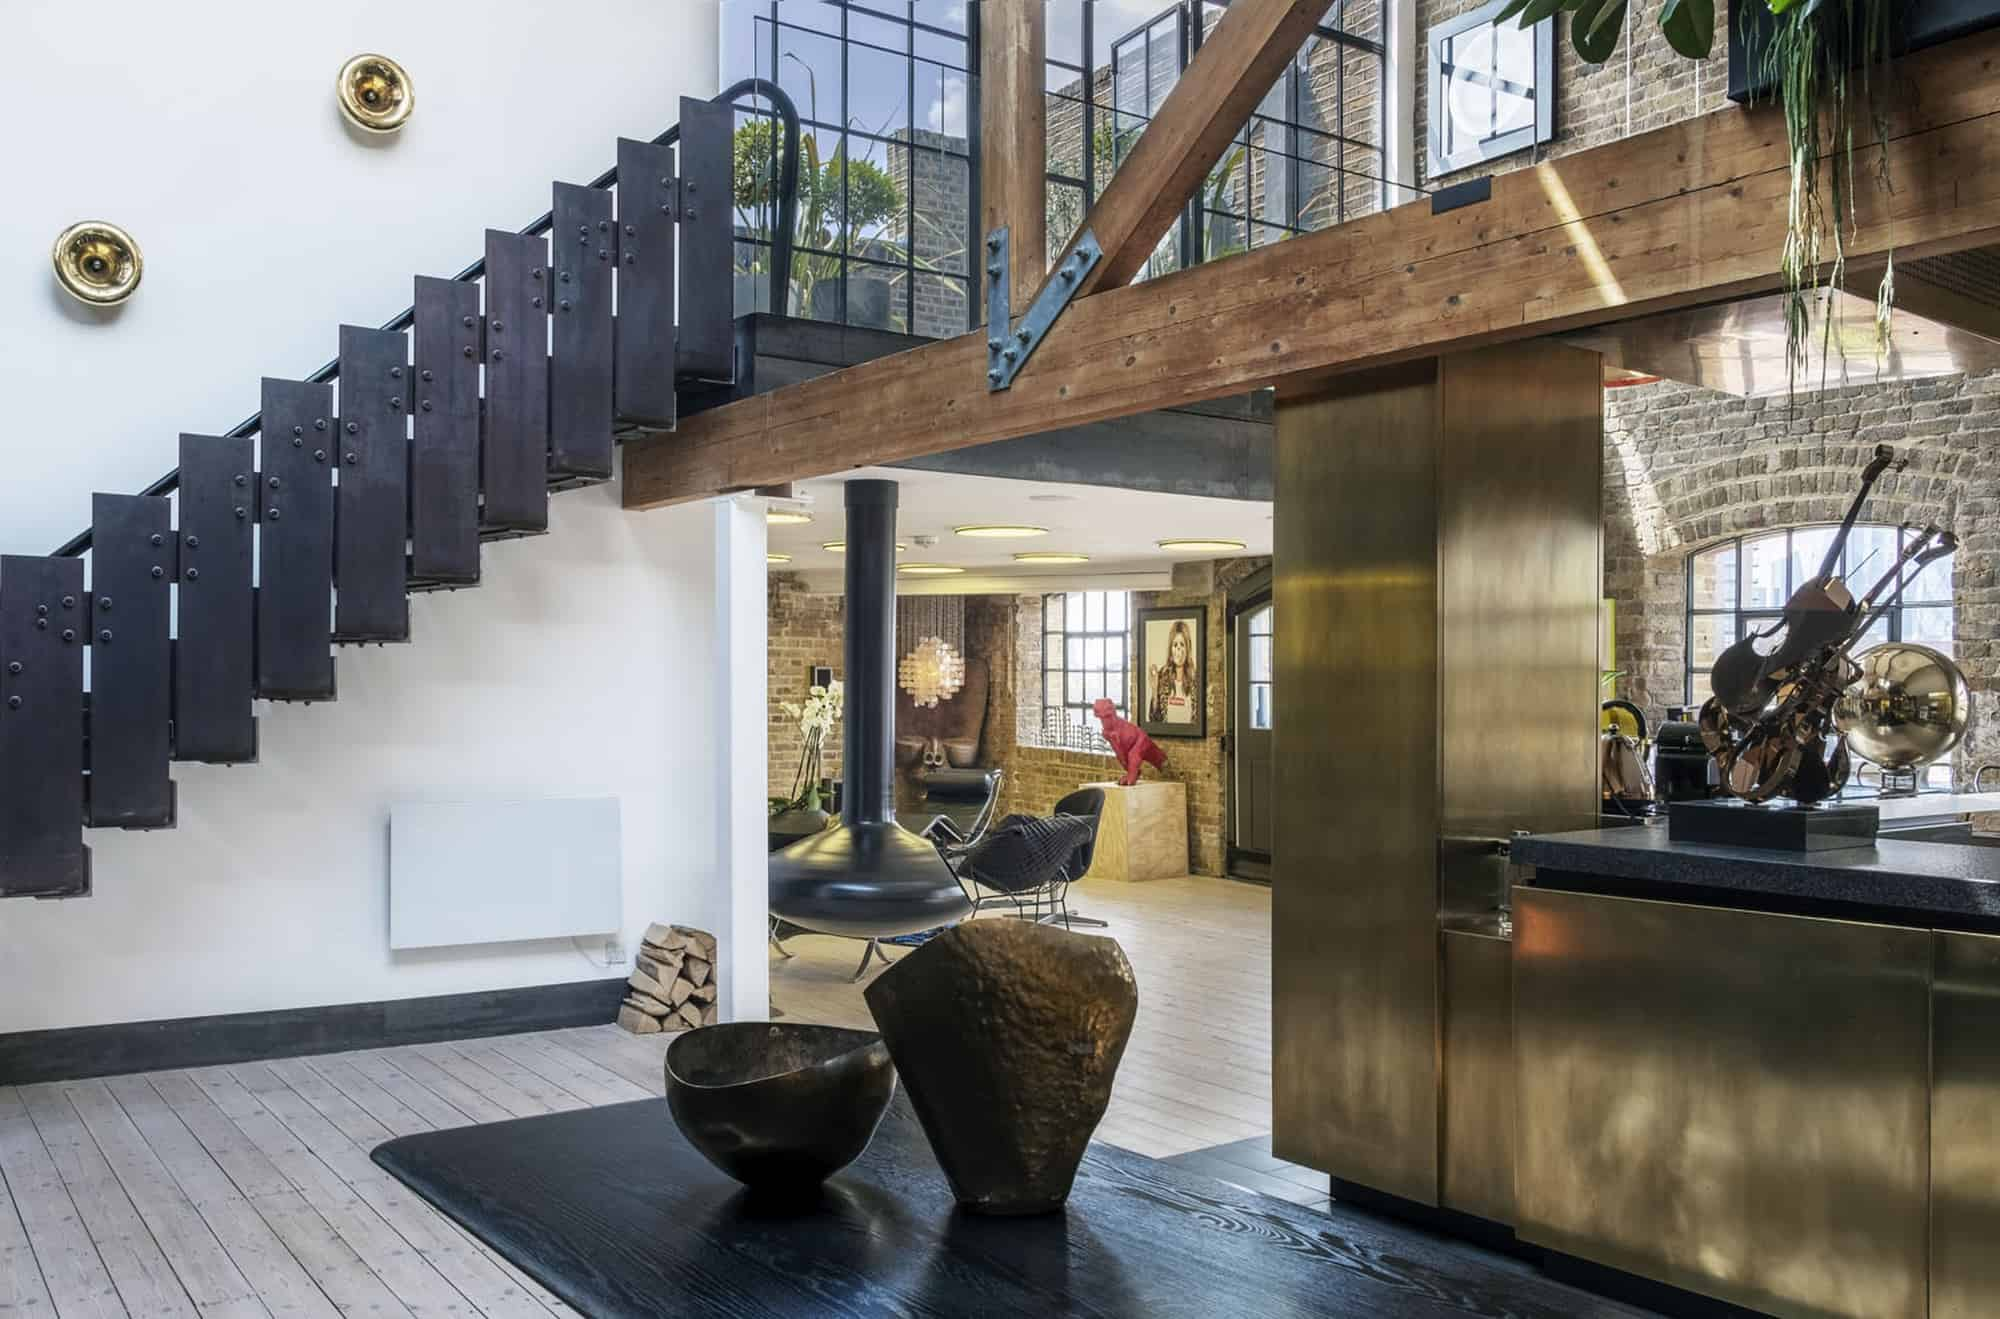 Wapping Penthouse E1W - Contemporary apartment filled with interesting art and boasting two roof terraces - The Location Guys